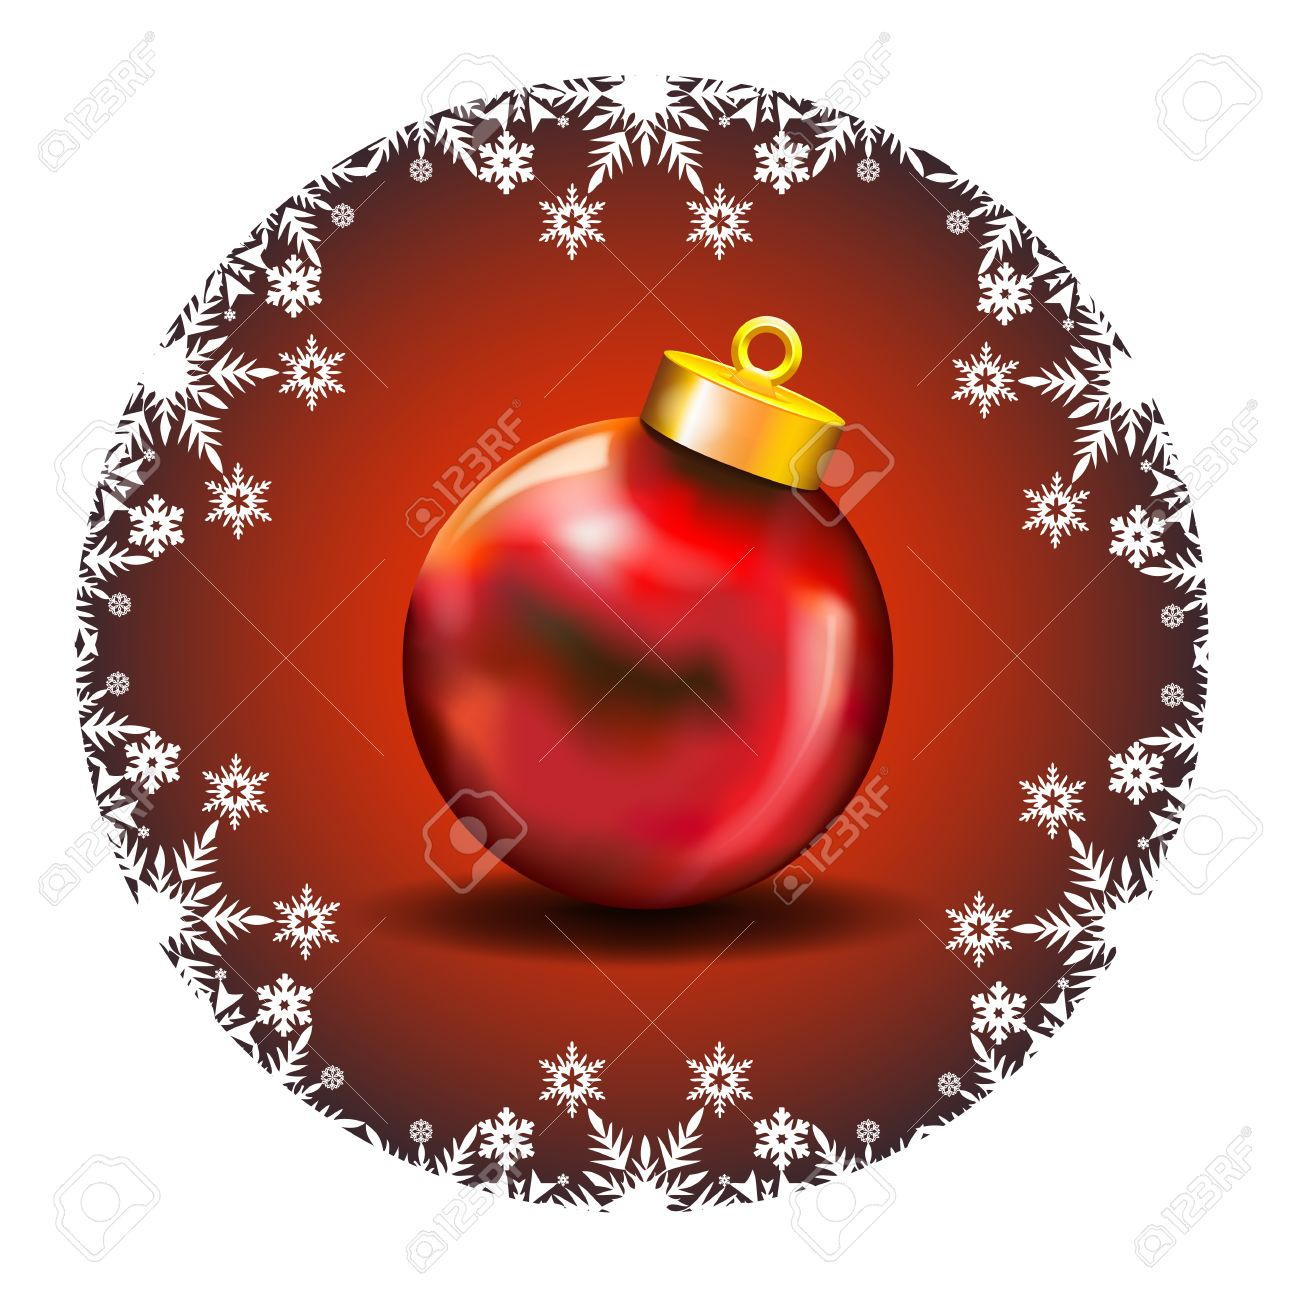 Merry Christmas Decoration with white snow icons and Red Ball   Merry Christmas Wishes framed by a White Snow Icons decoration in a deep red background with red ball Stock Vector - 16380801